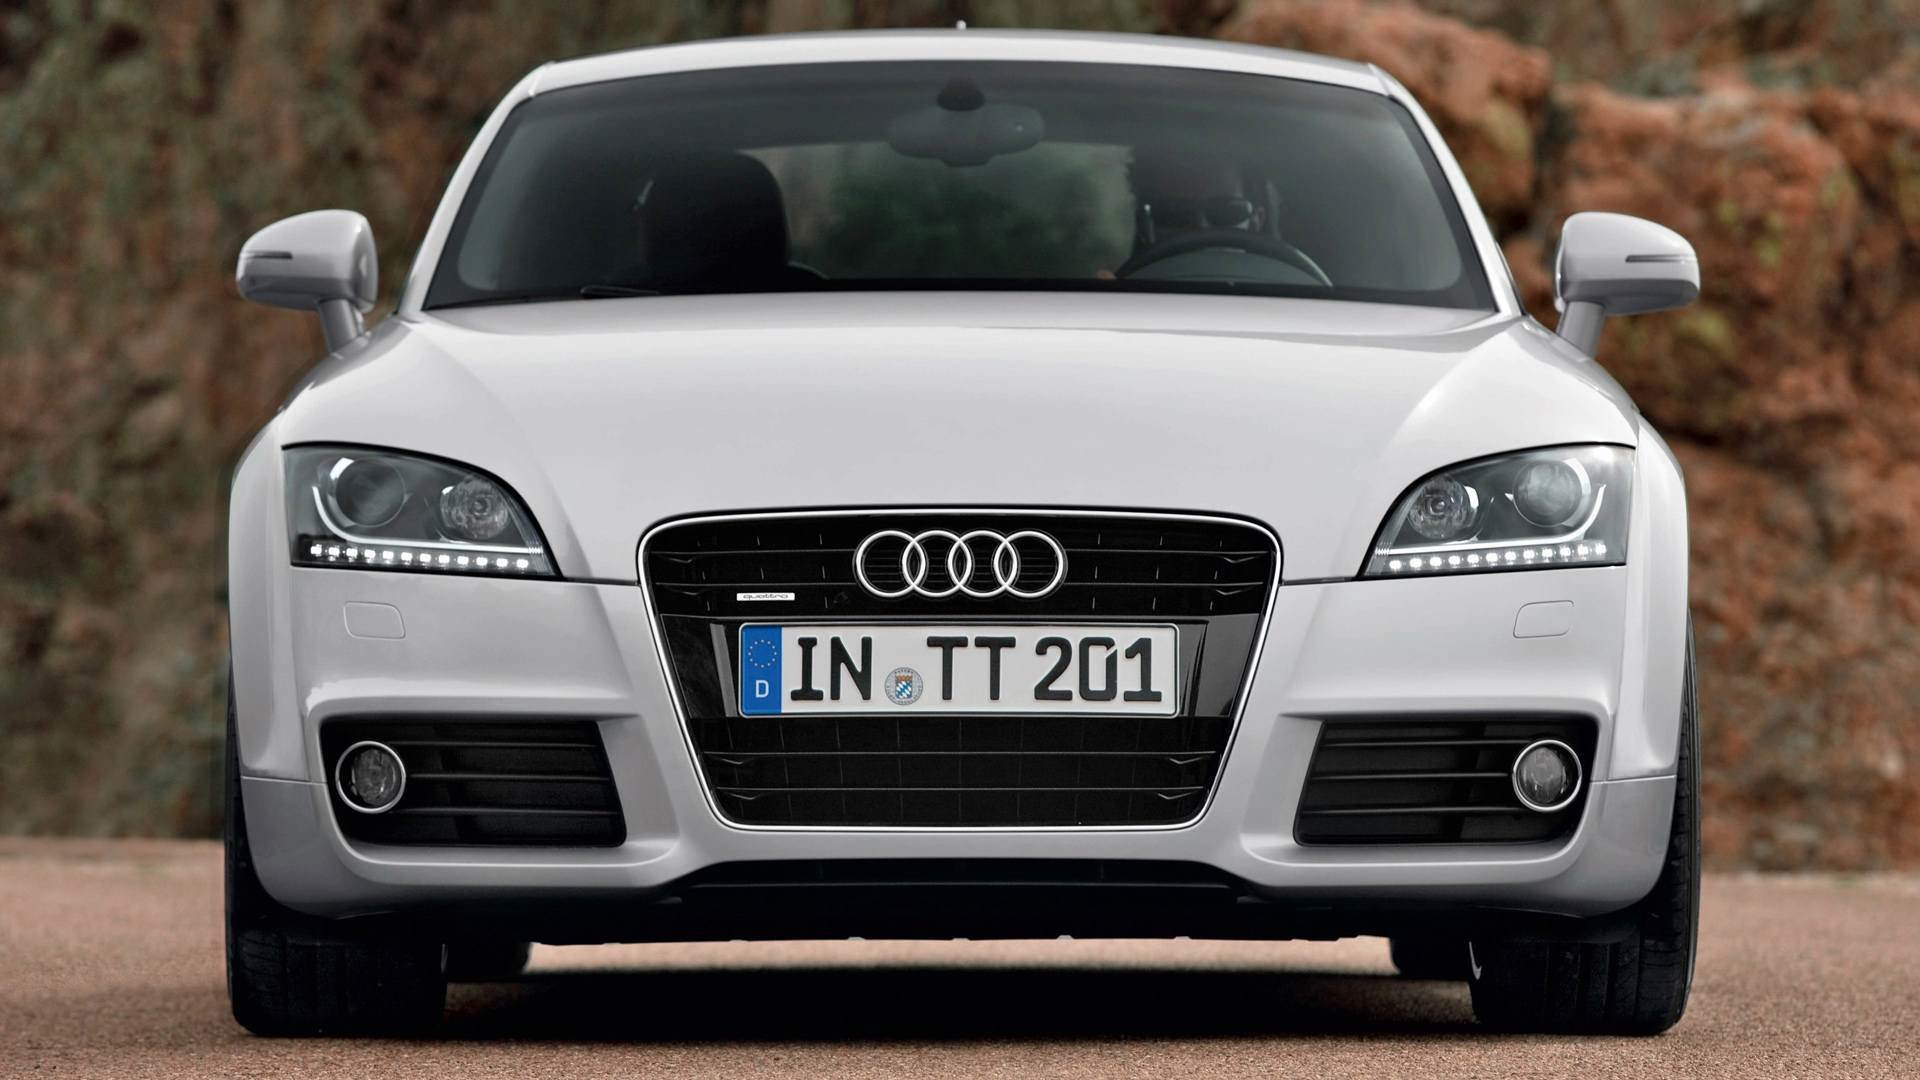 Latest Audi Cars Hd Wallpapers Free Download